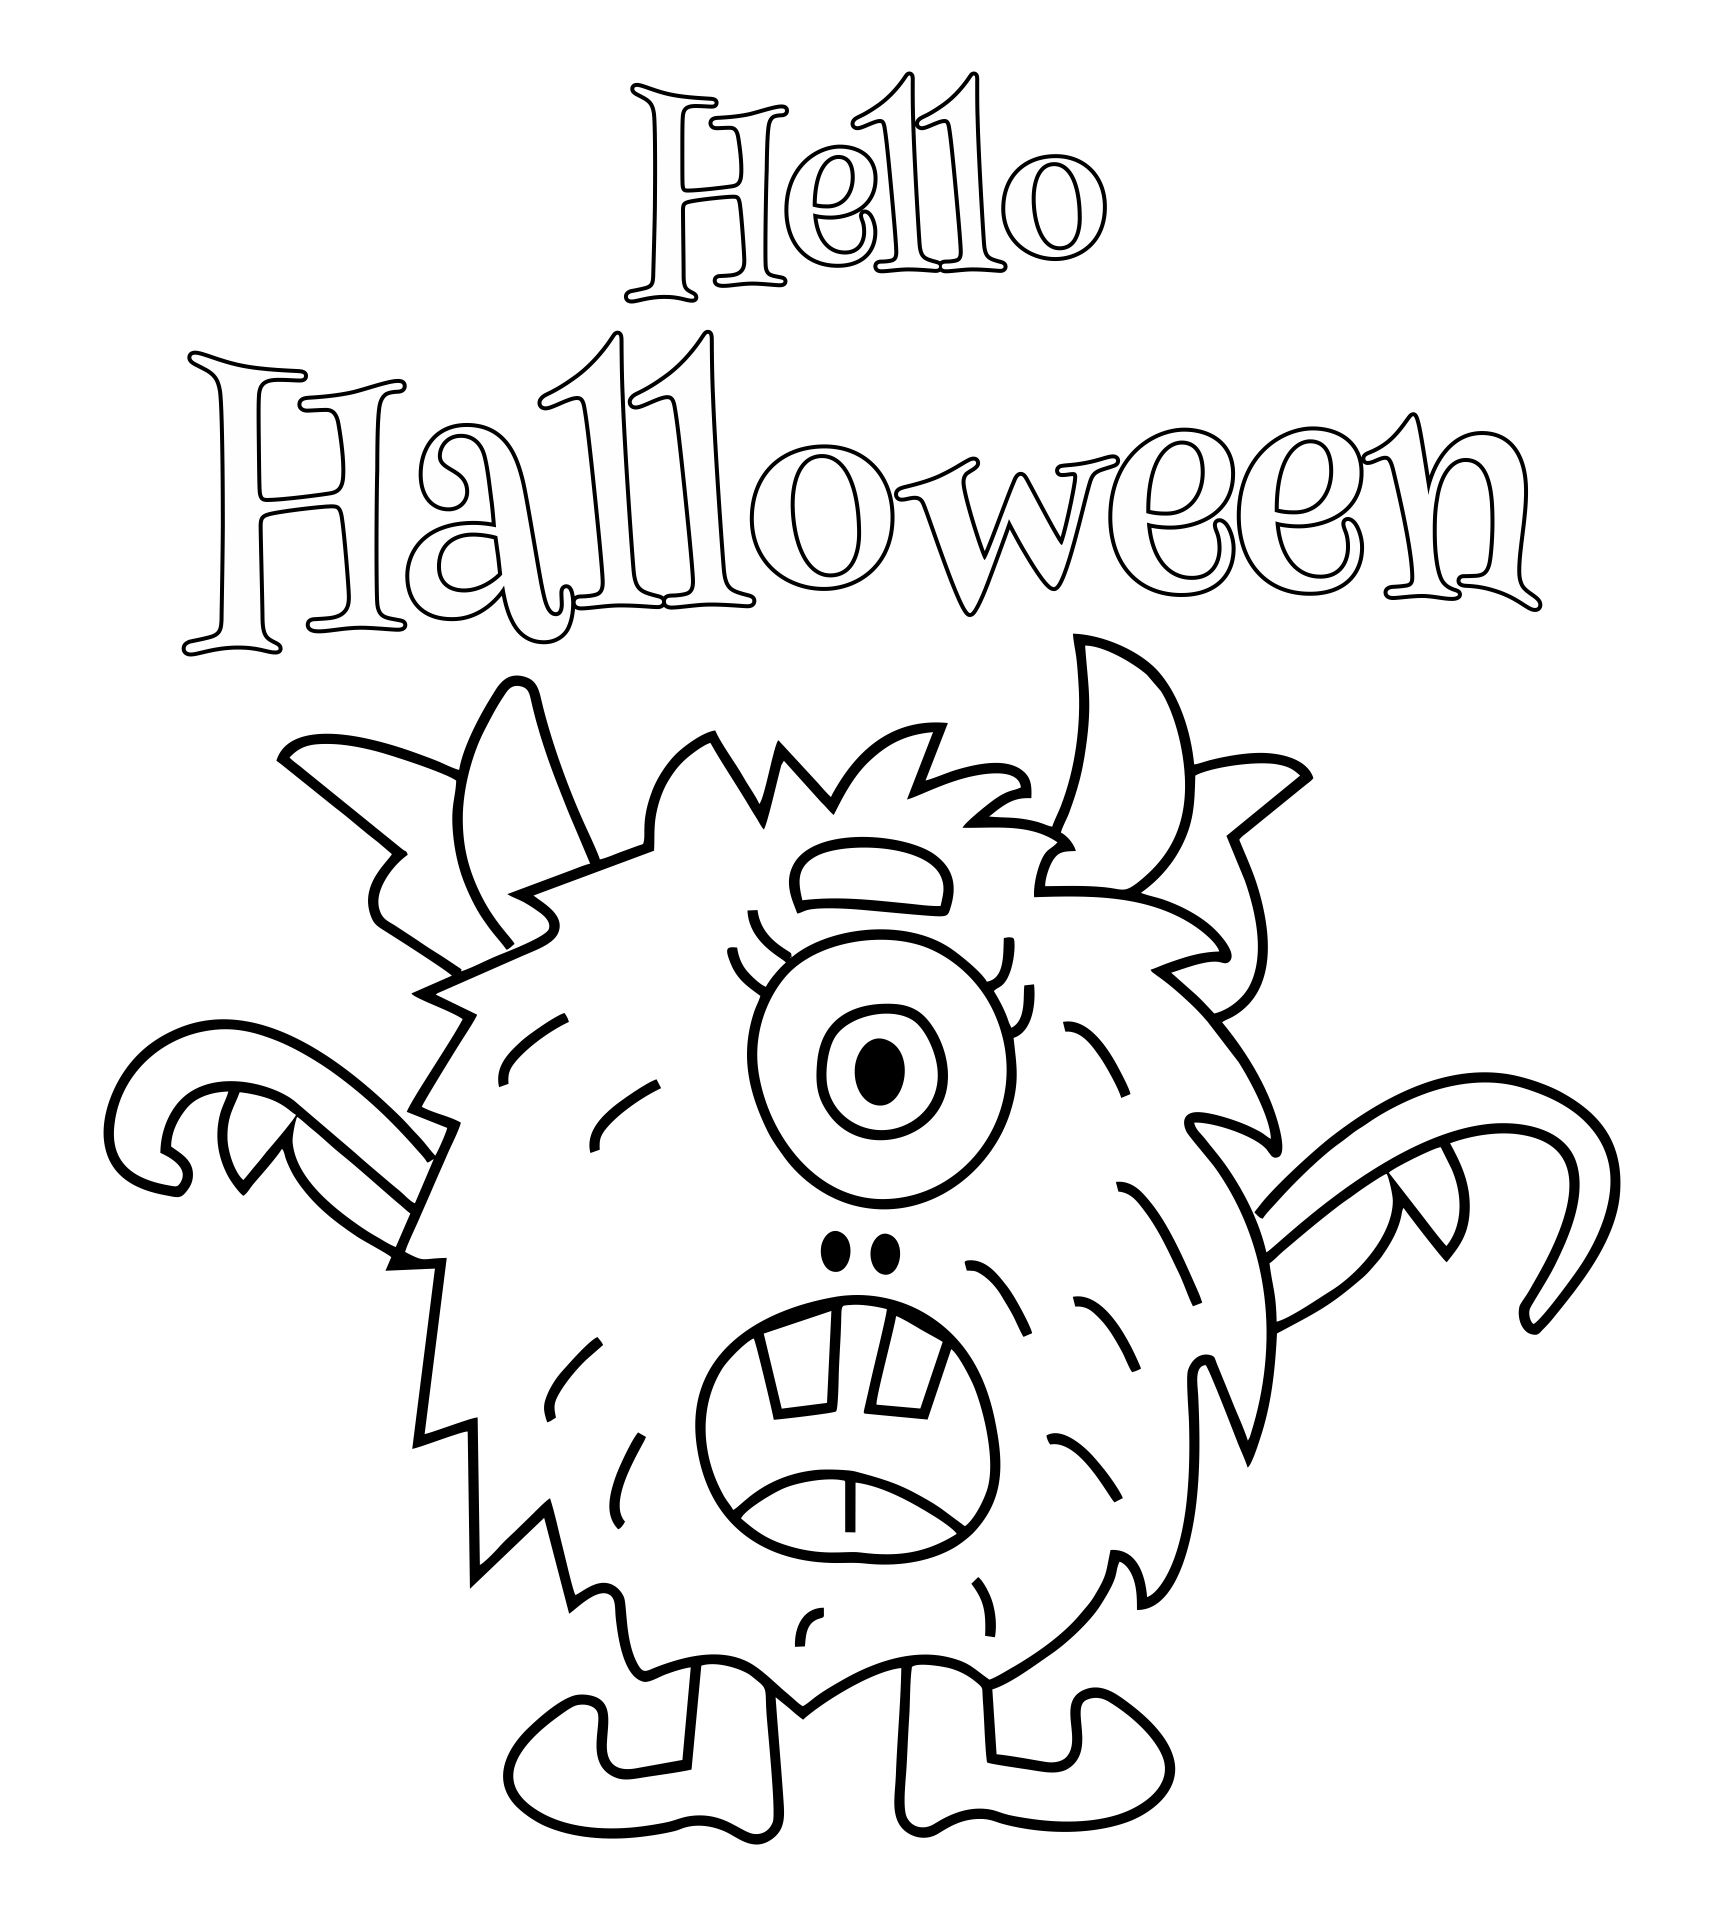 Printable Halloween Coloring